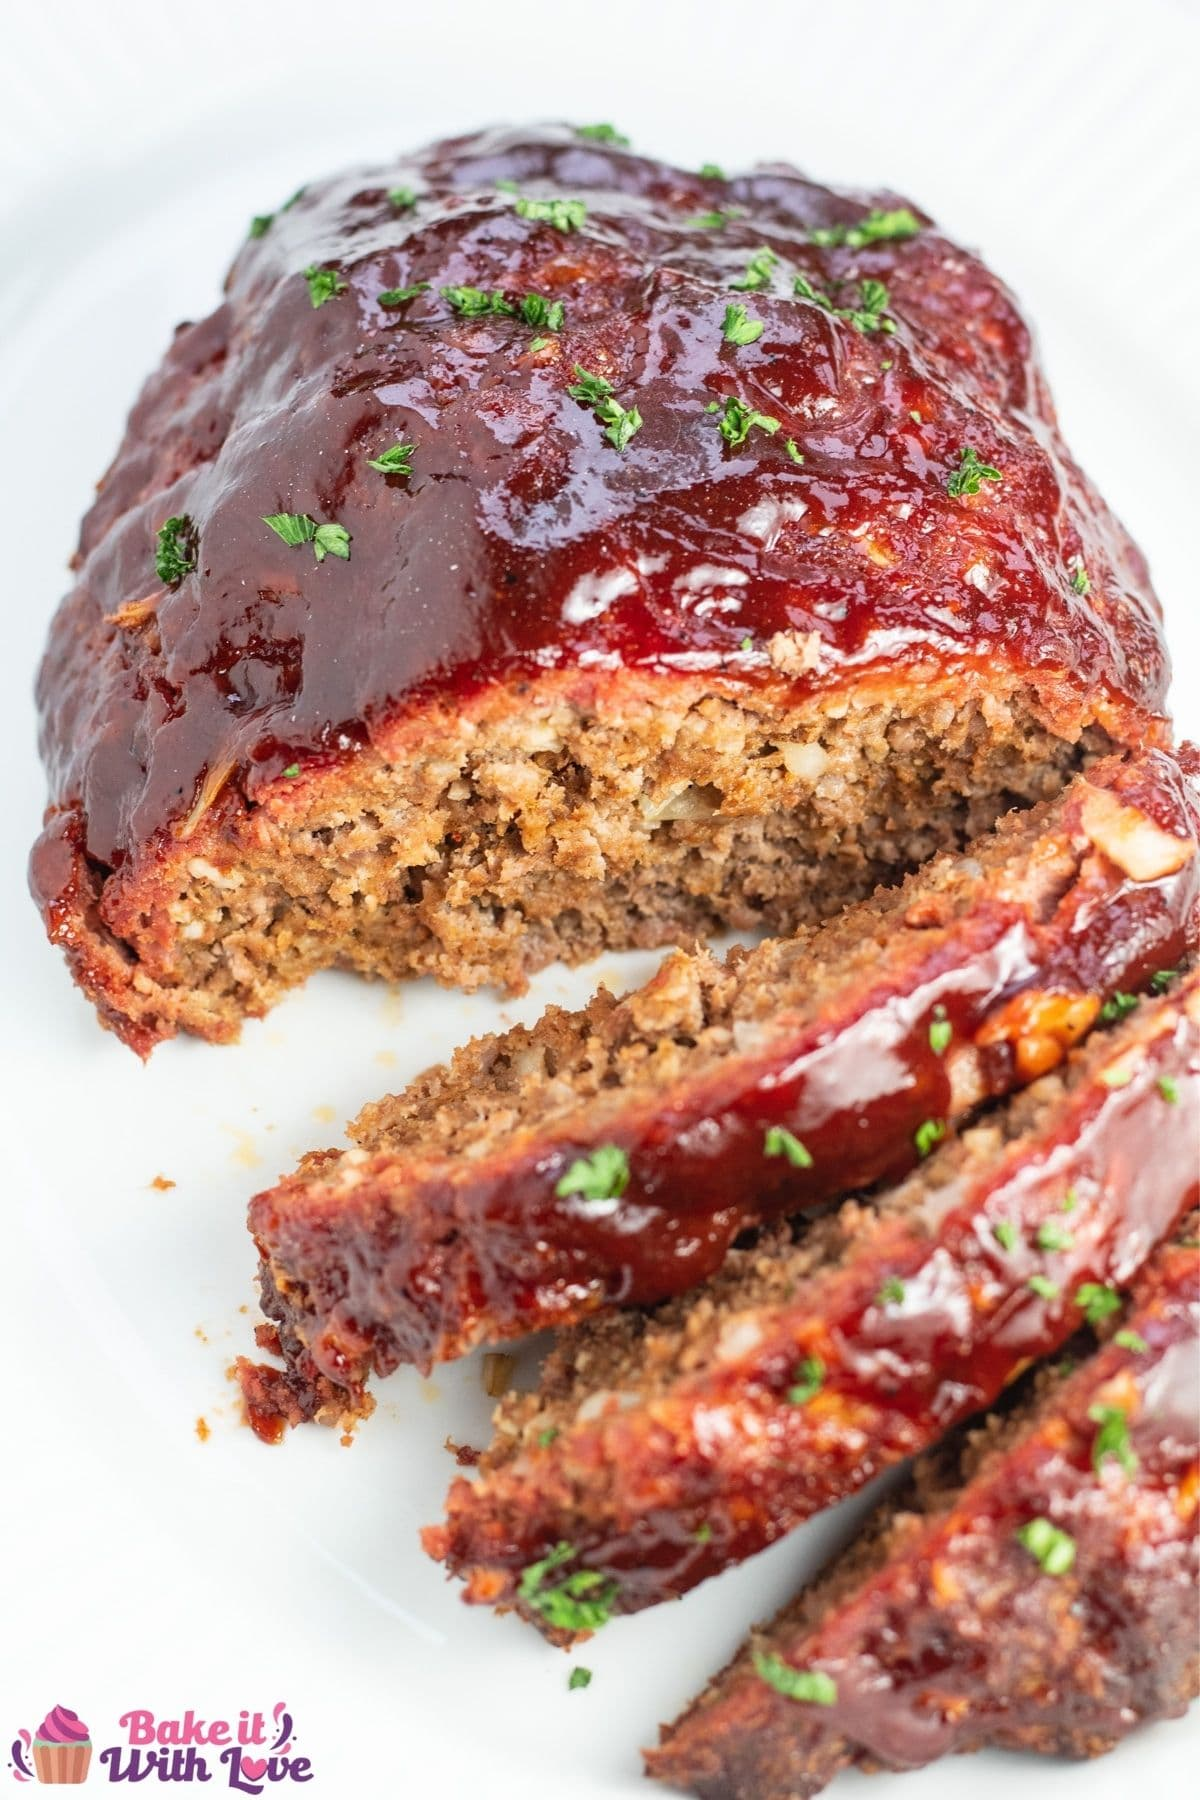 Tall overhead of the sliced smoked meatloaf on white platter.